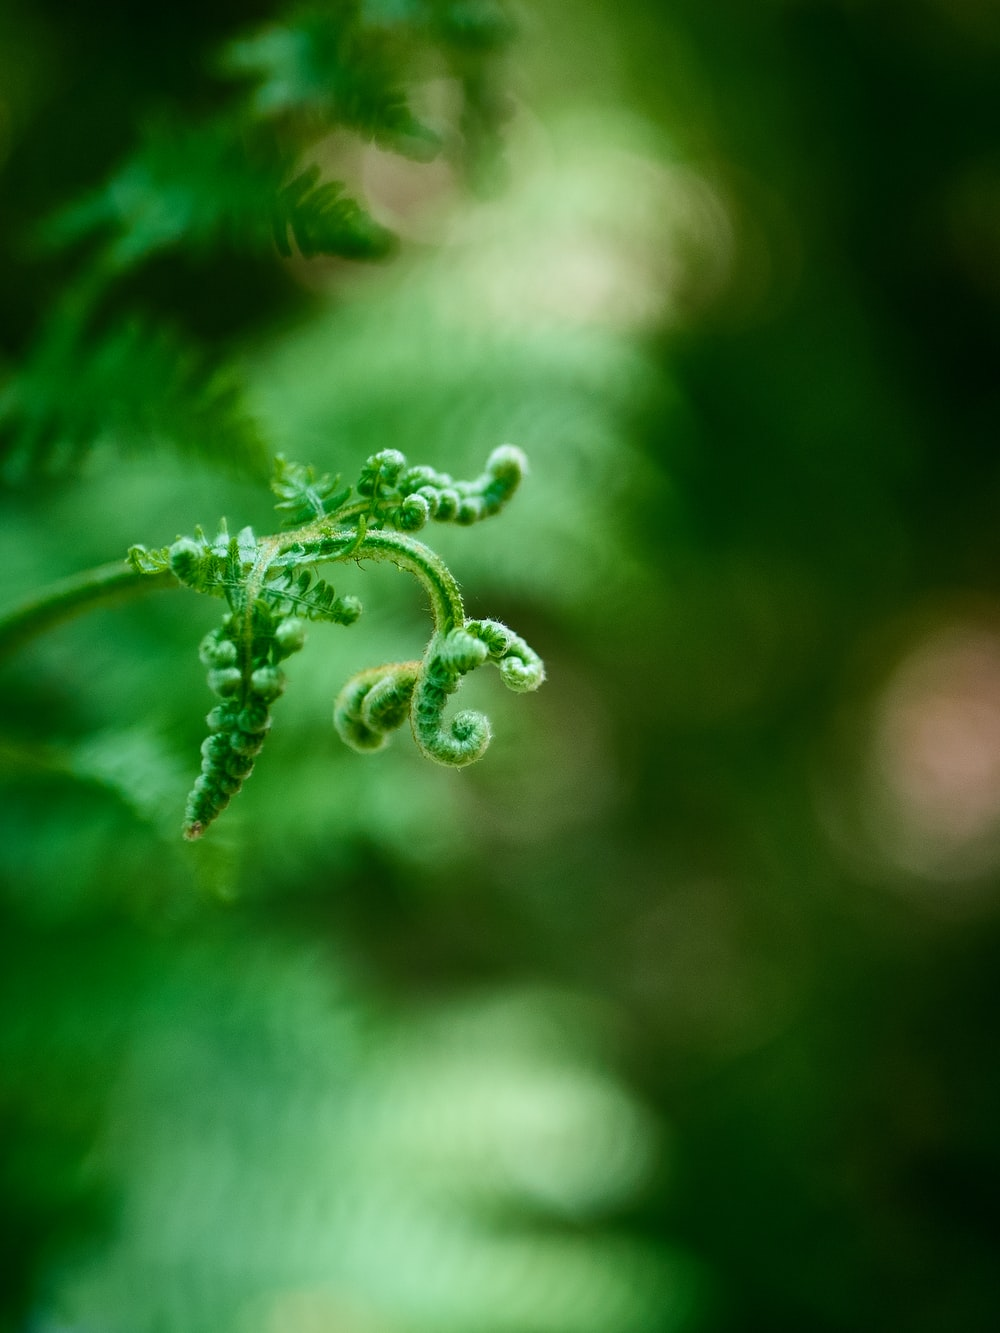 green-leafed plant close-up photography